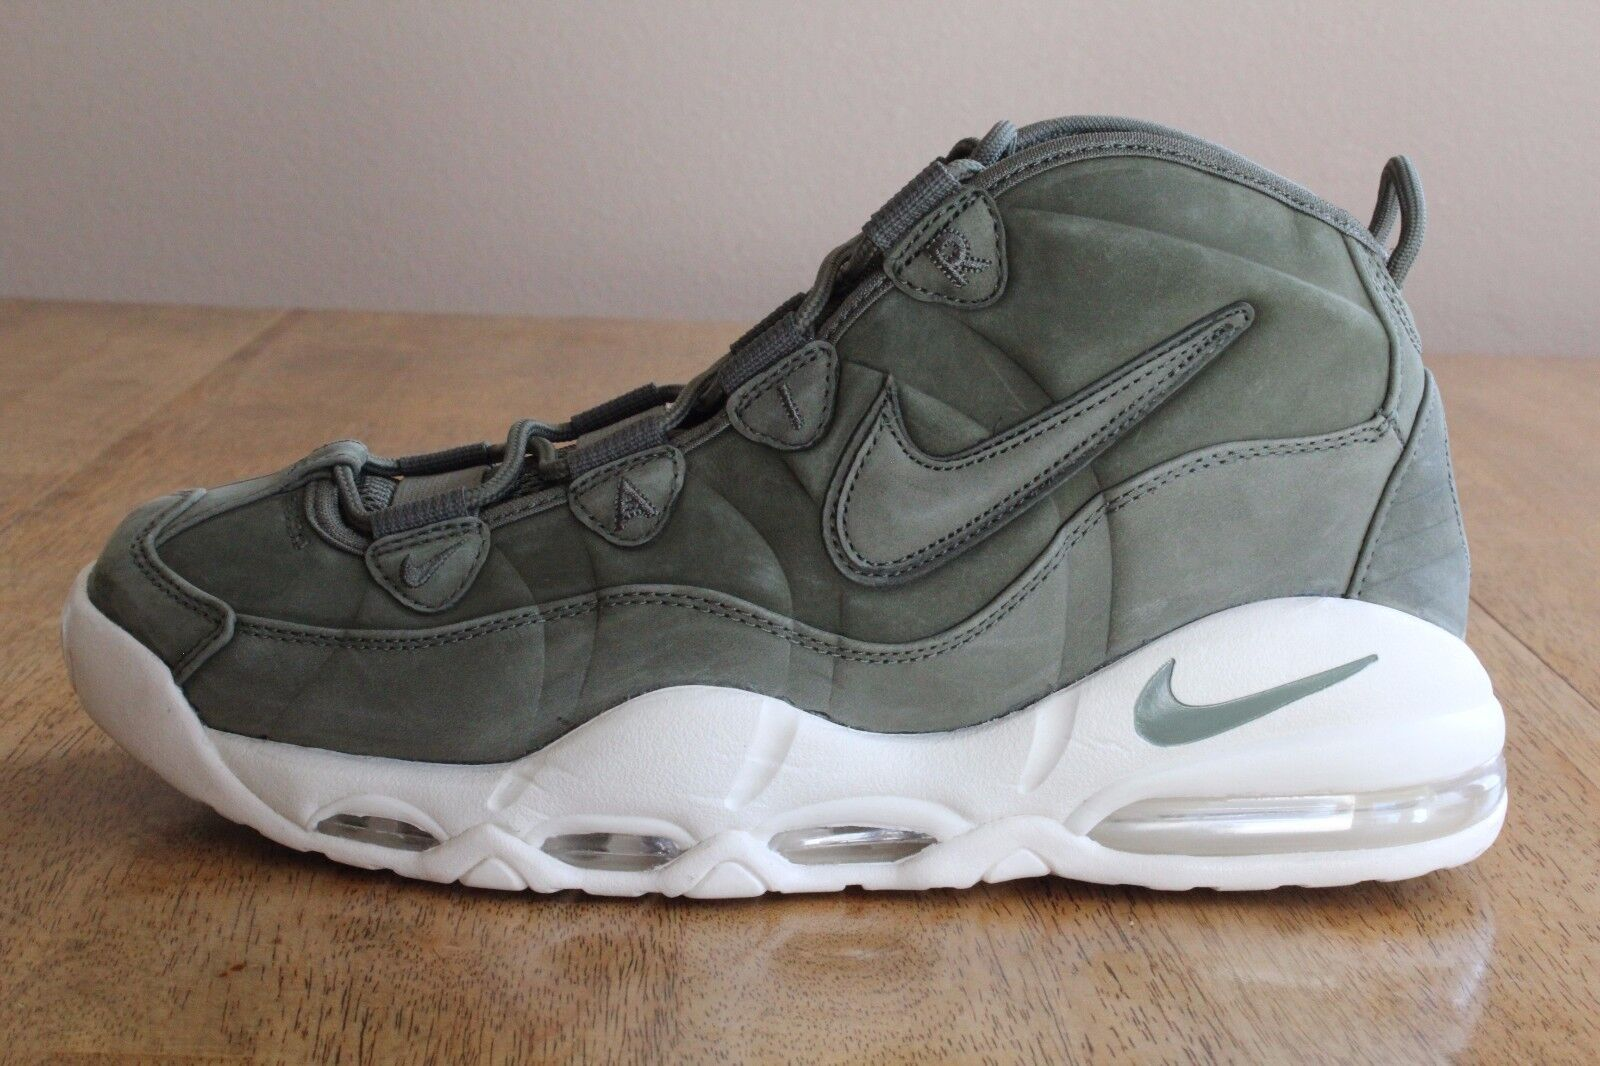 18 New Nike Air Max Uptempo QS Urban Haze Basketball shoes Men's SIze 10.5